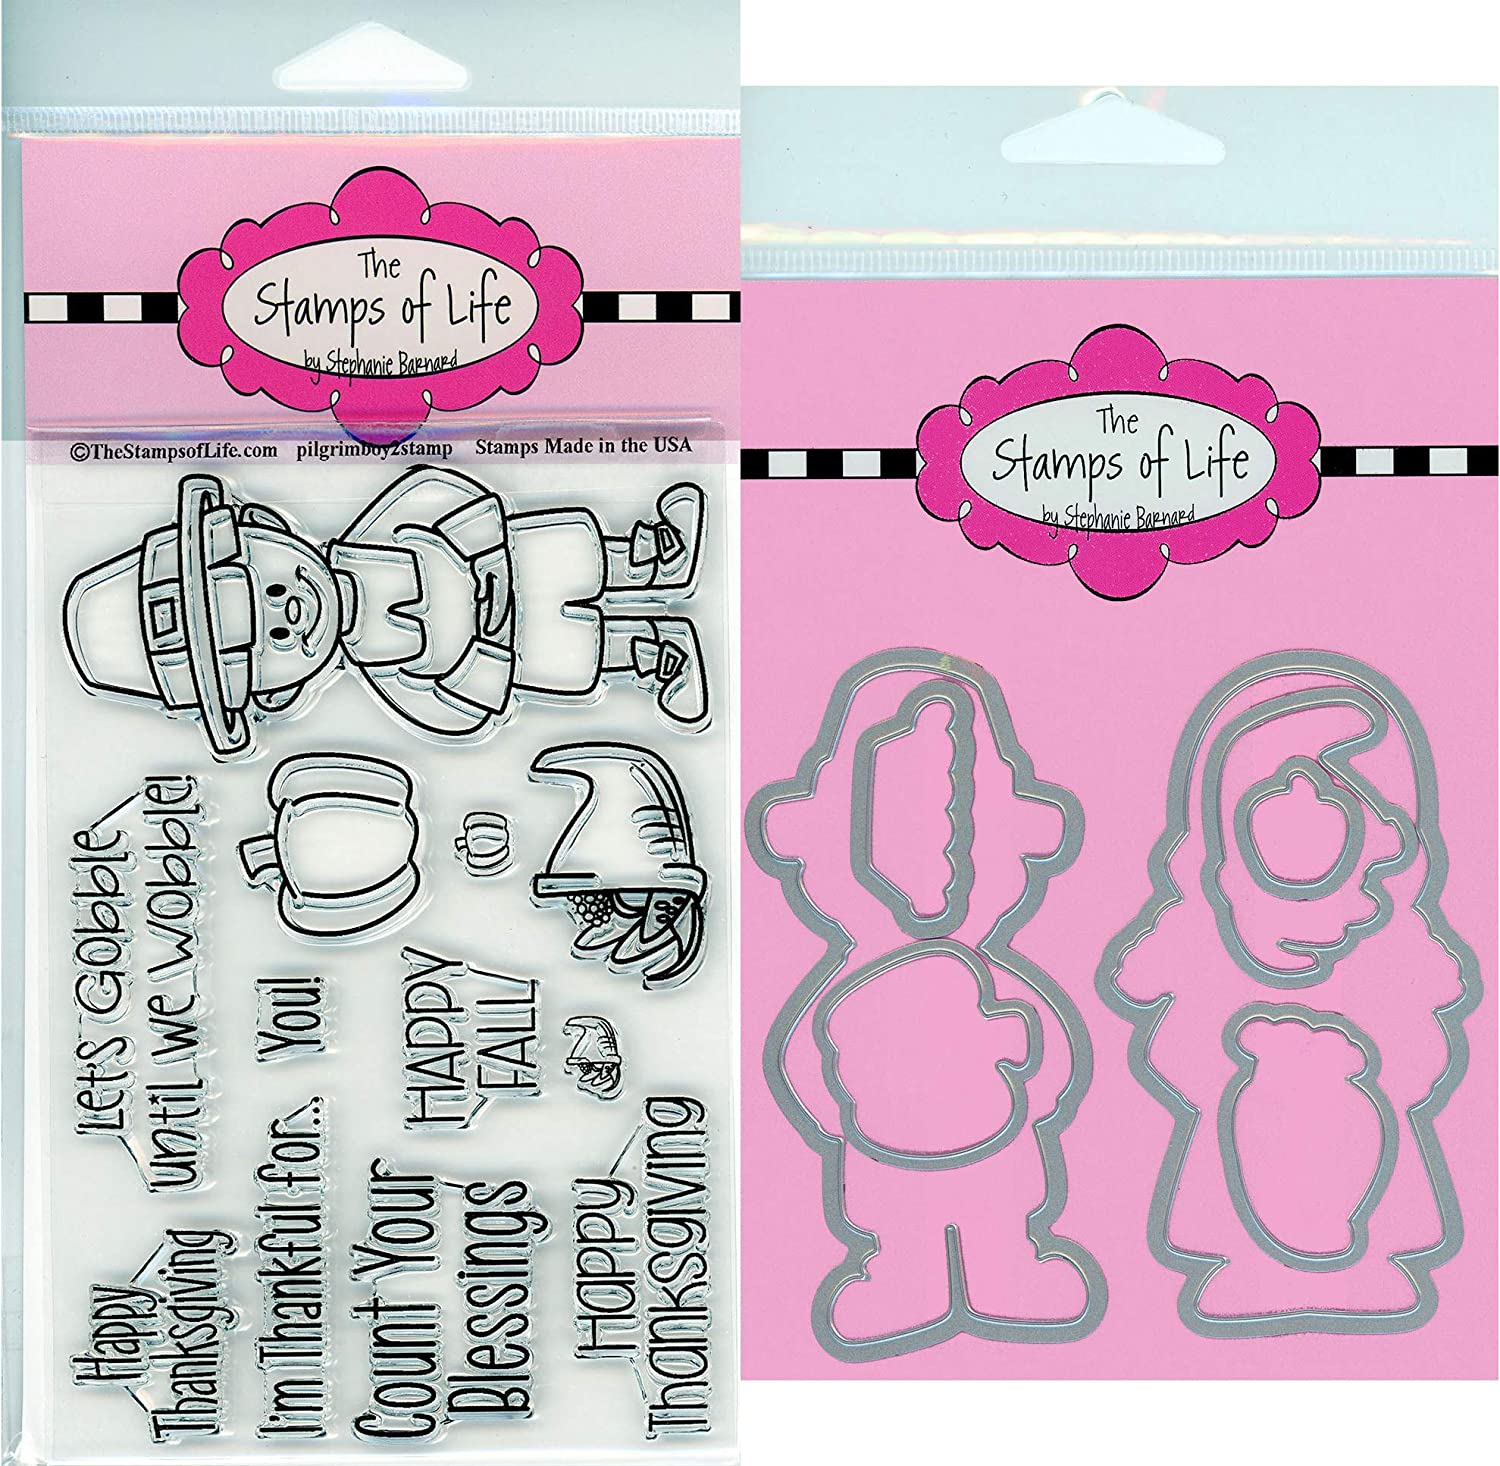 PilgrimGirl2Stamp Thanksgiving Pilgrim Girl Stamps for Card-Making and Scrapbooking Supplies by The Stamps of Life